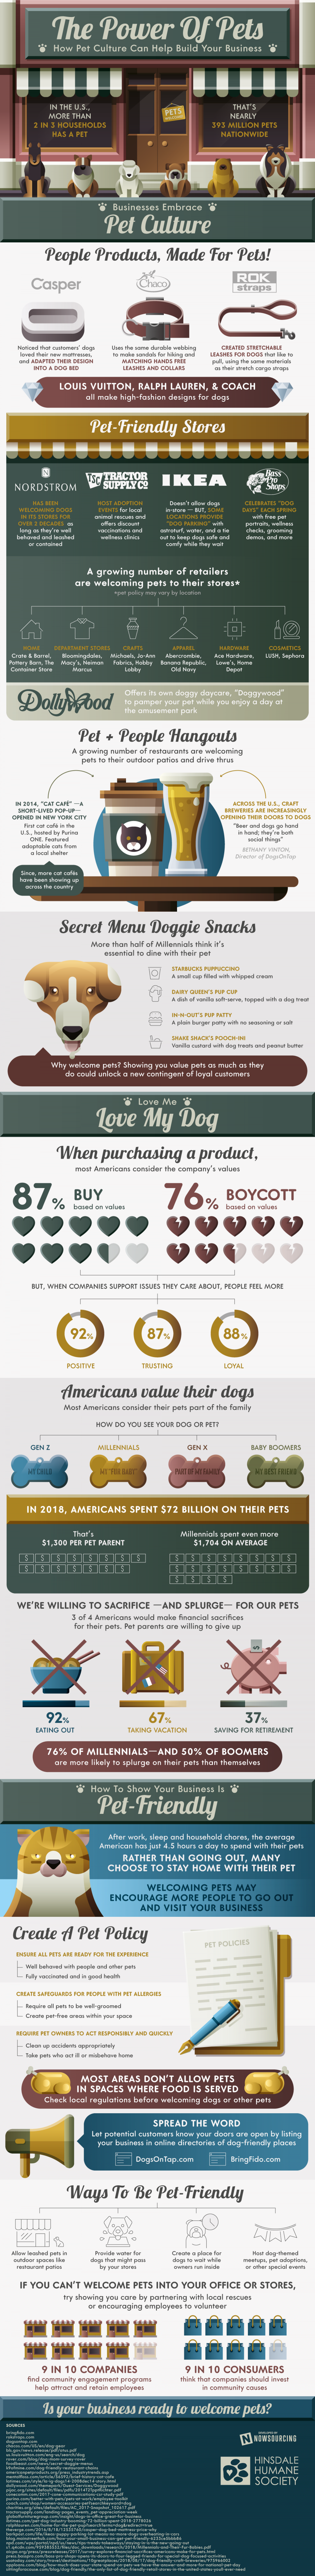 The Power Of Pets Infographic